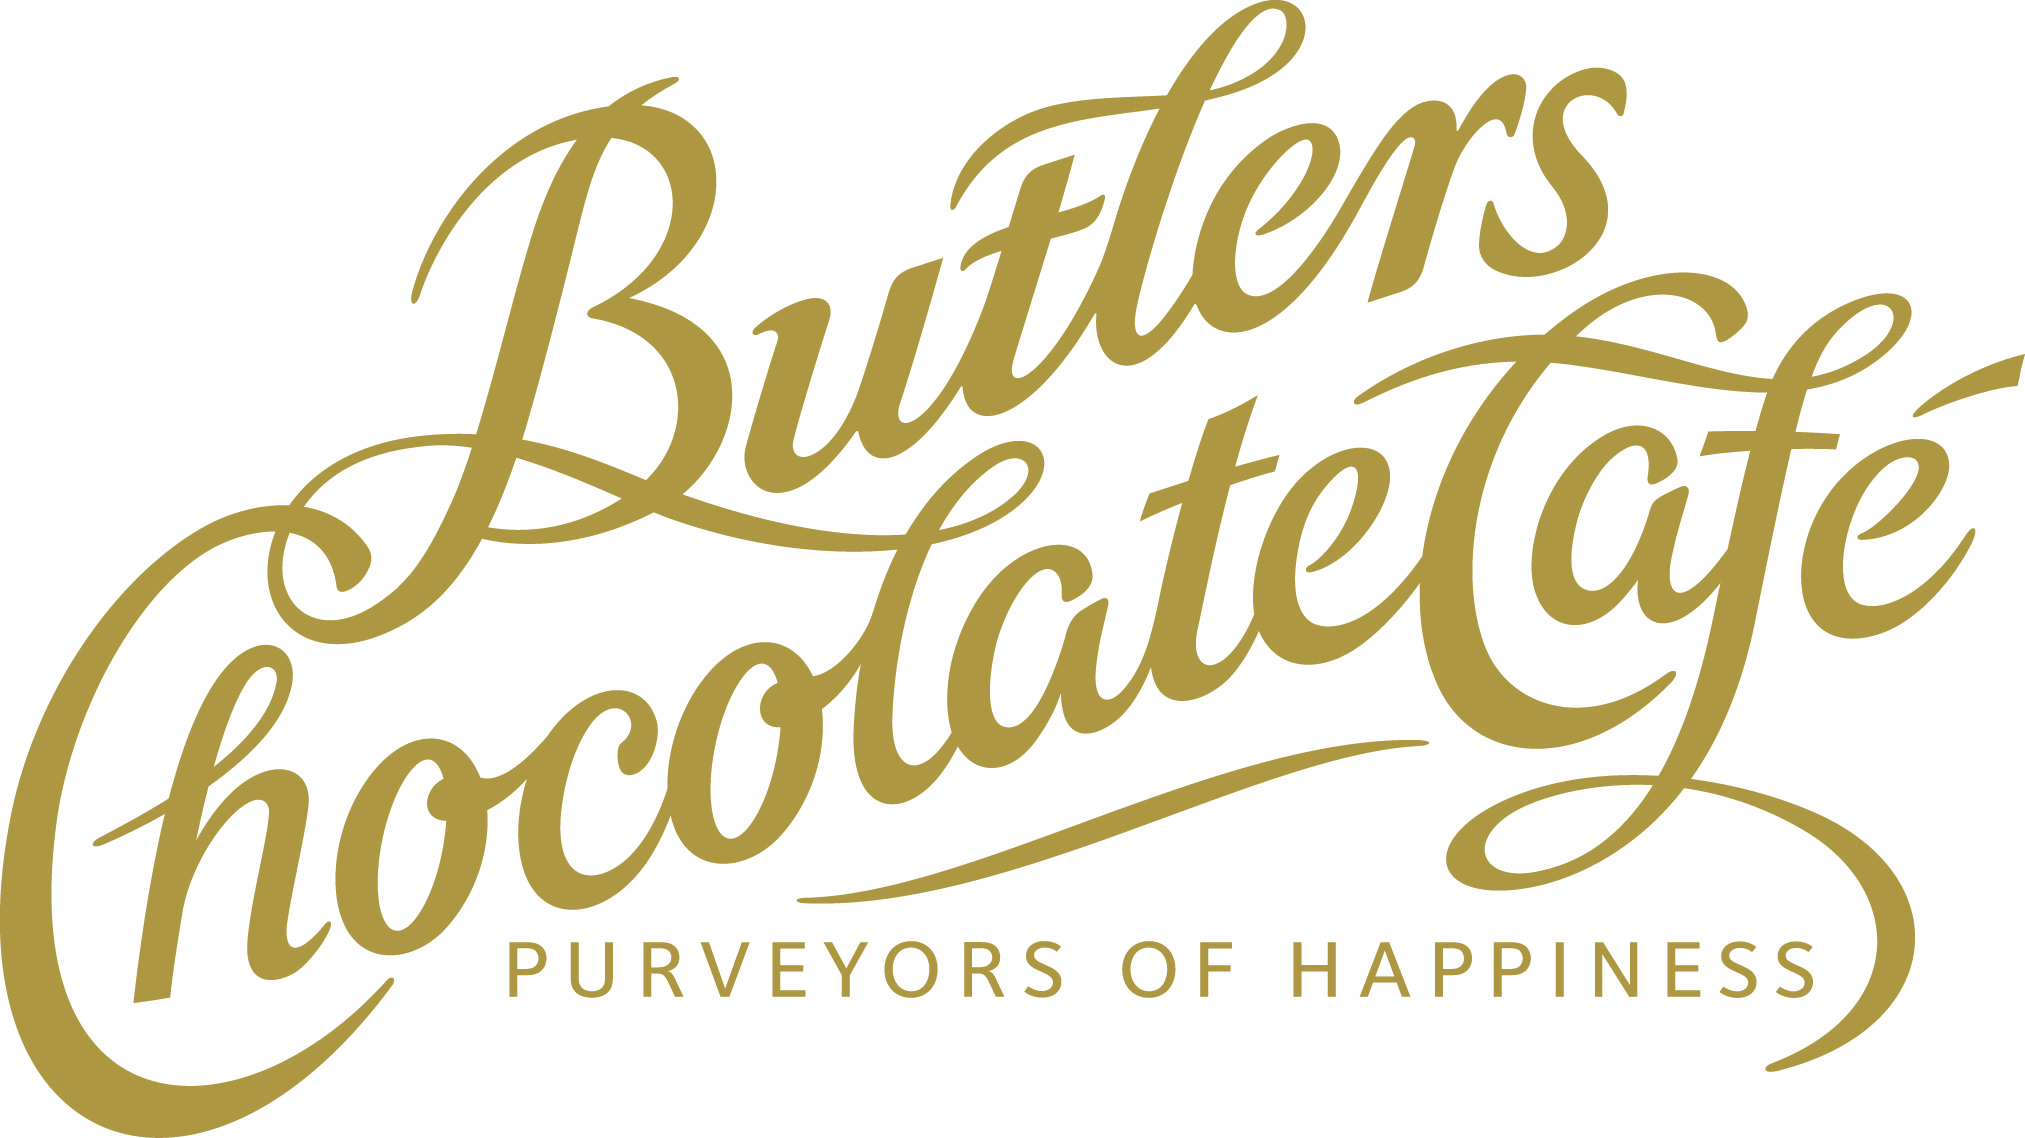 New Butlers Chocolate Café opening in the Crescent Shopping Centre ...